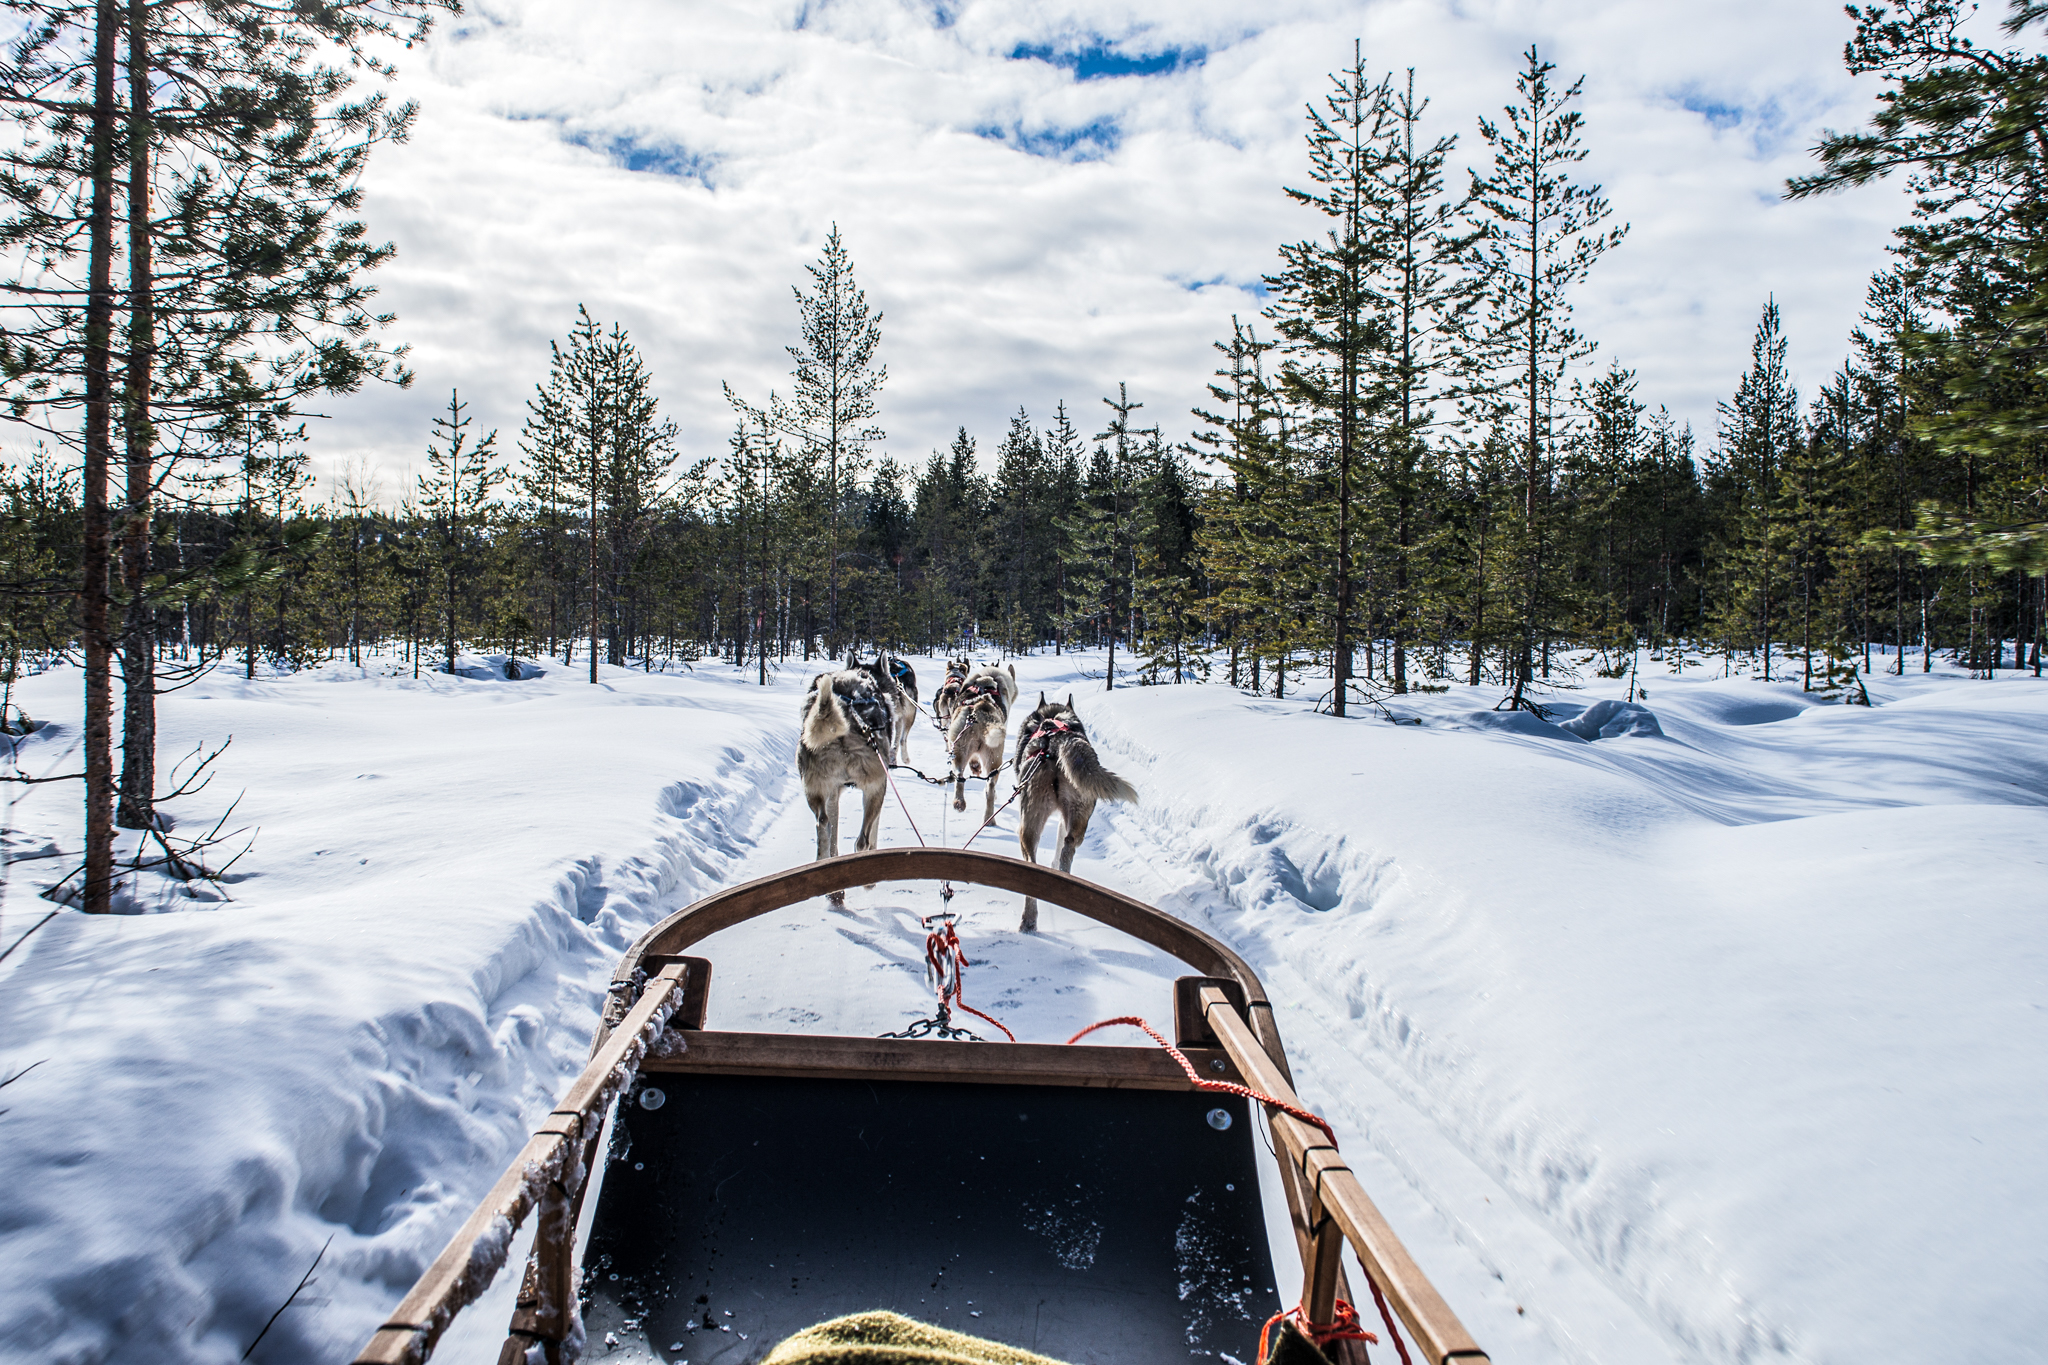 Husky sleigh ride in forest